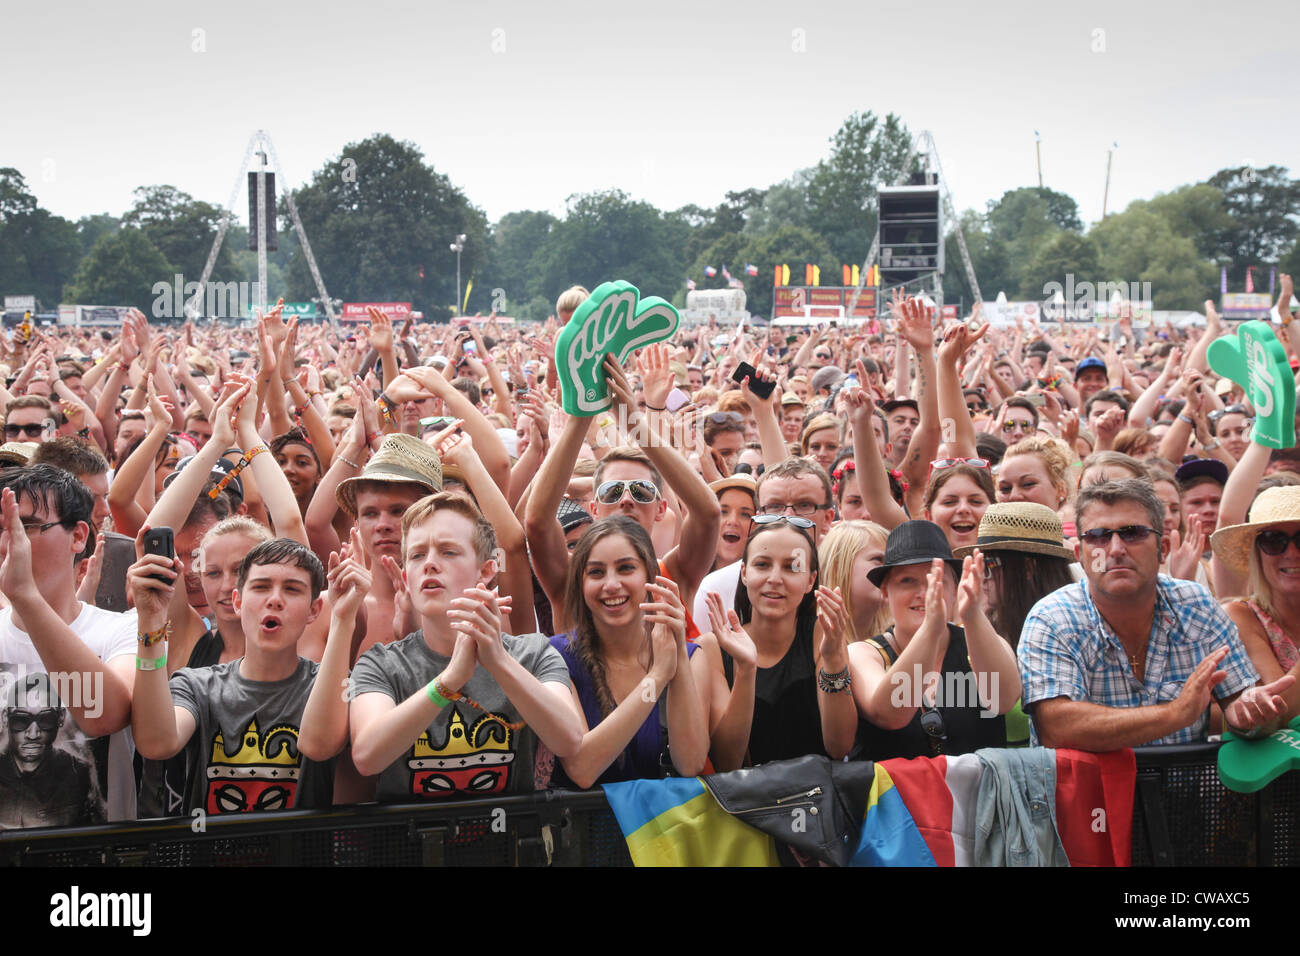 The crowd enjoying the live music at V Festival in Hylands Park, Chelmsford, Essex - Stock Image